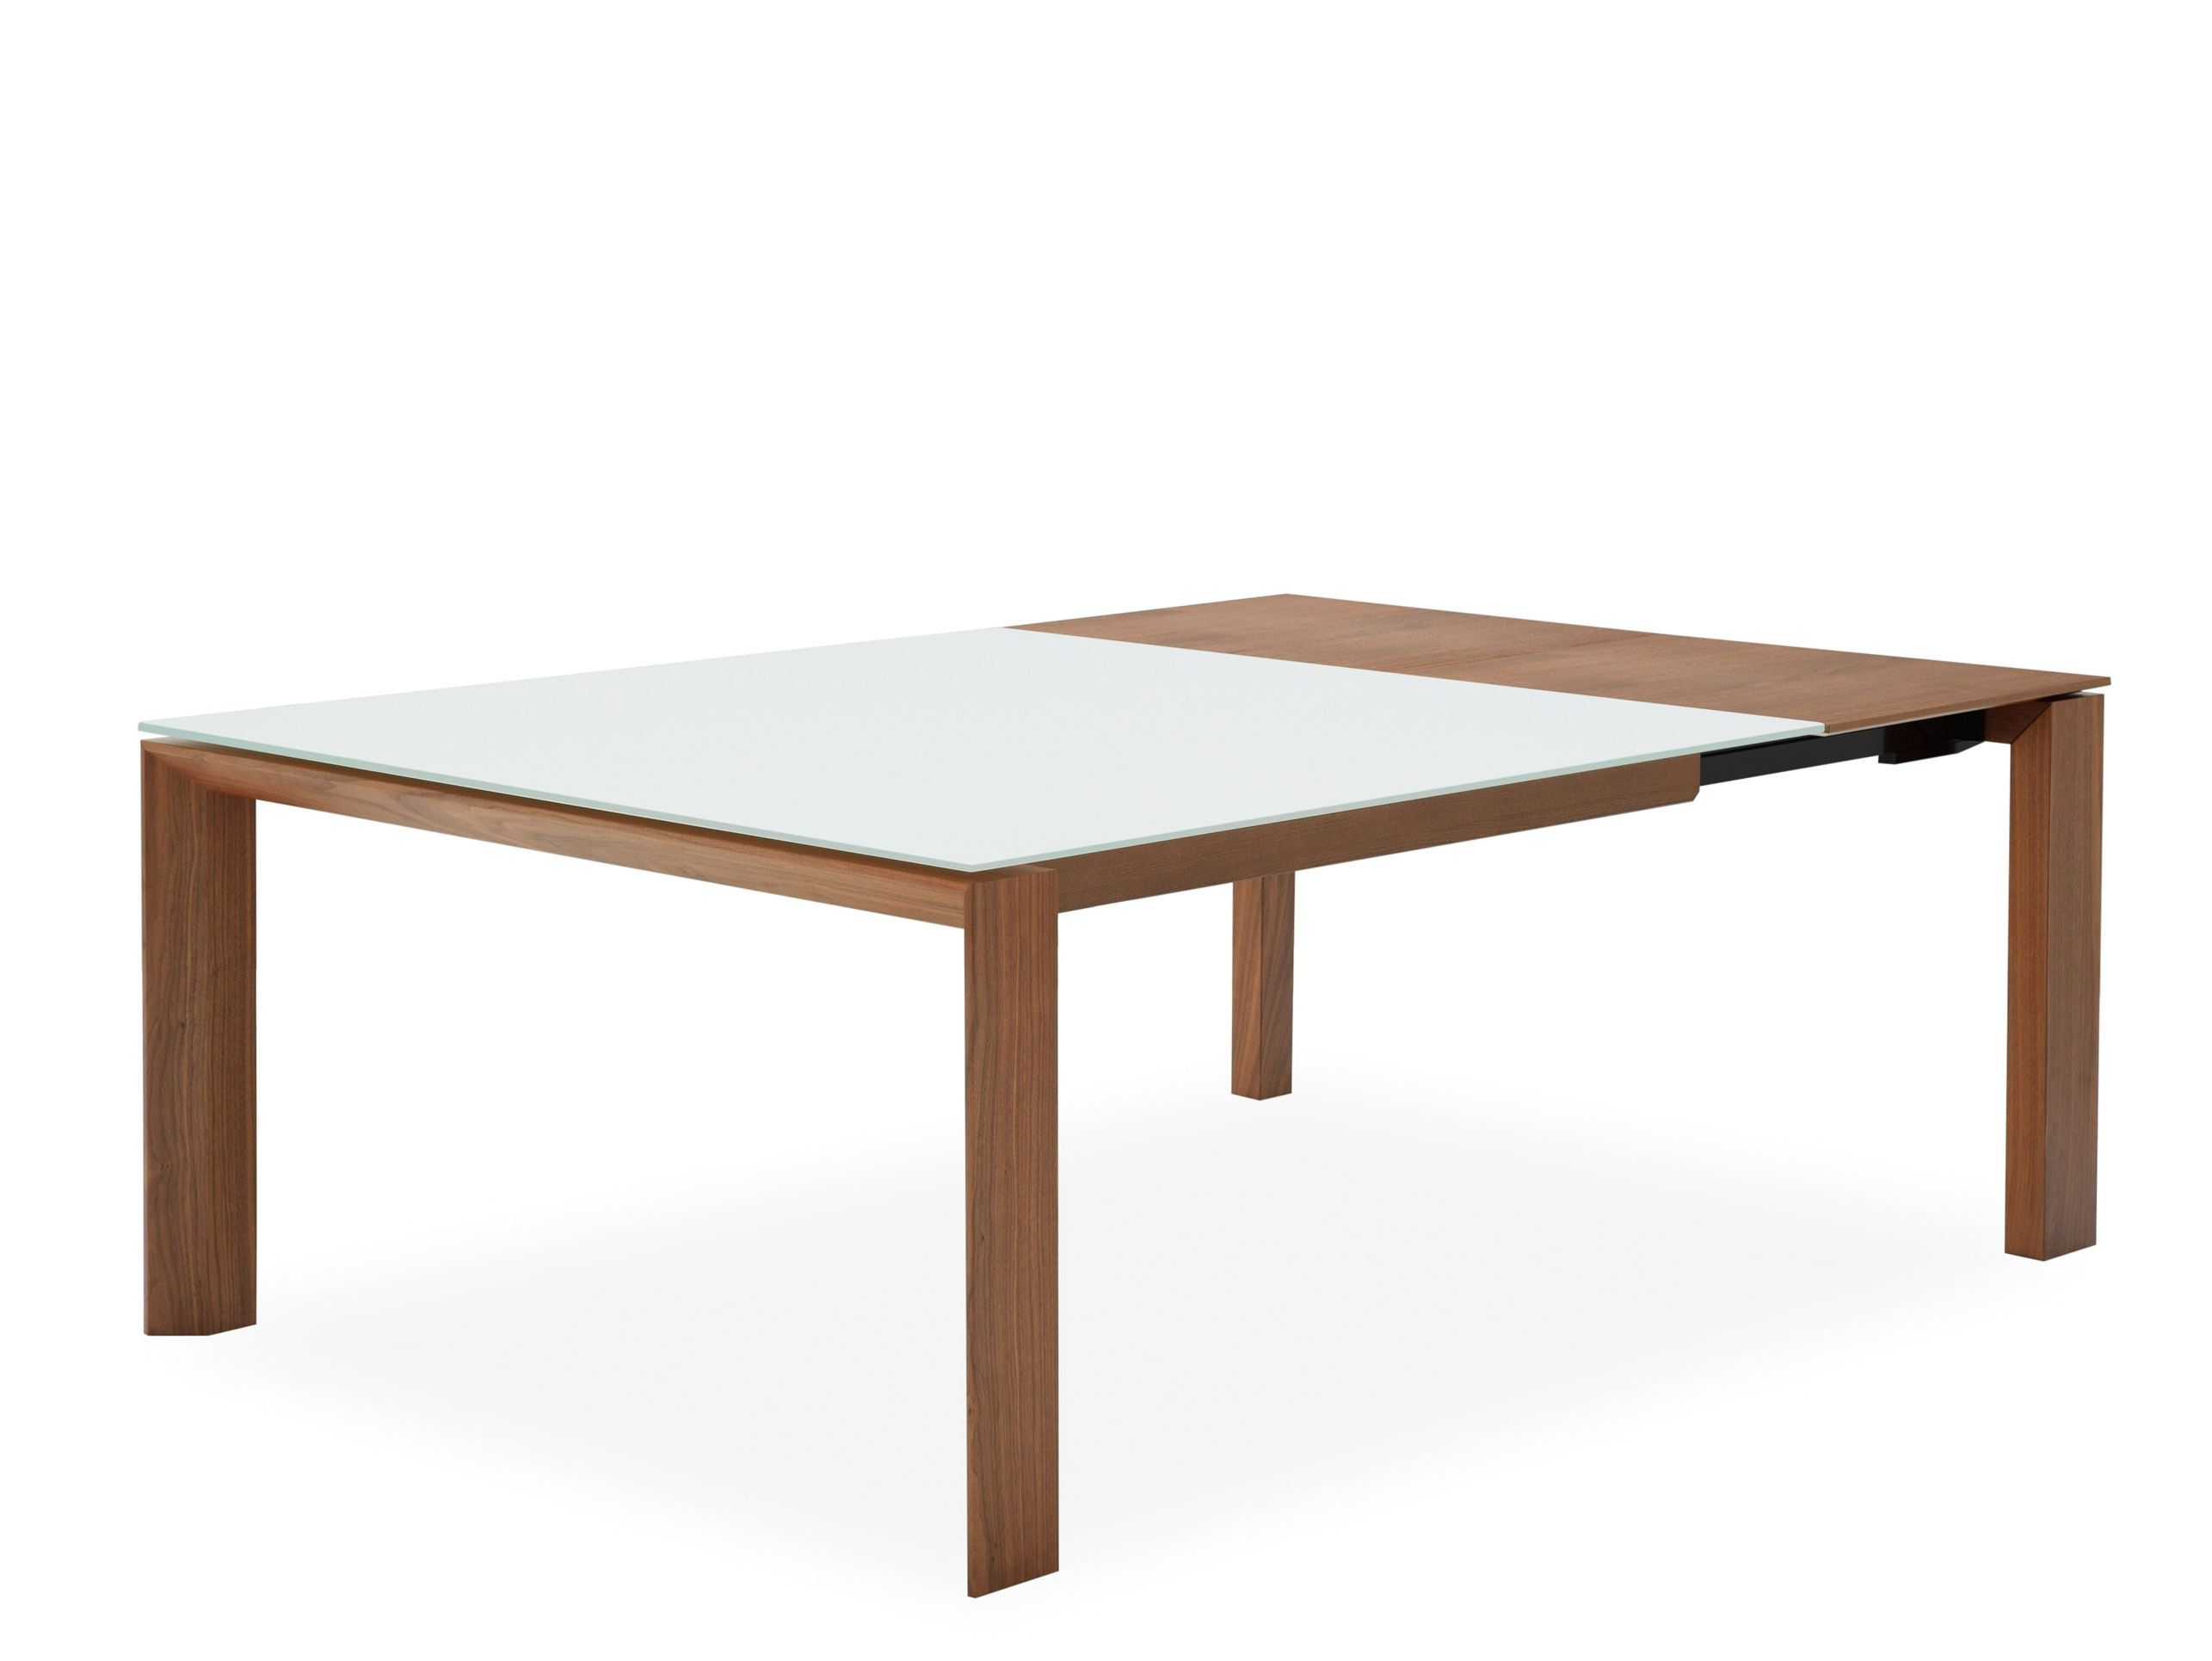 Omnia glass table en verre by calligaris design s t c for Table extensible calligaris